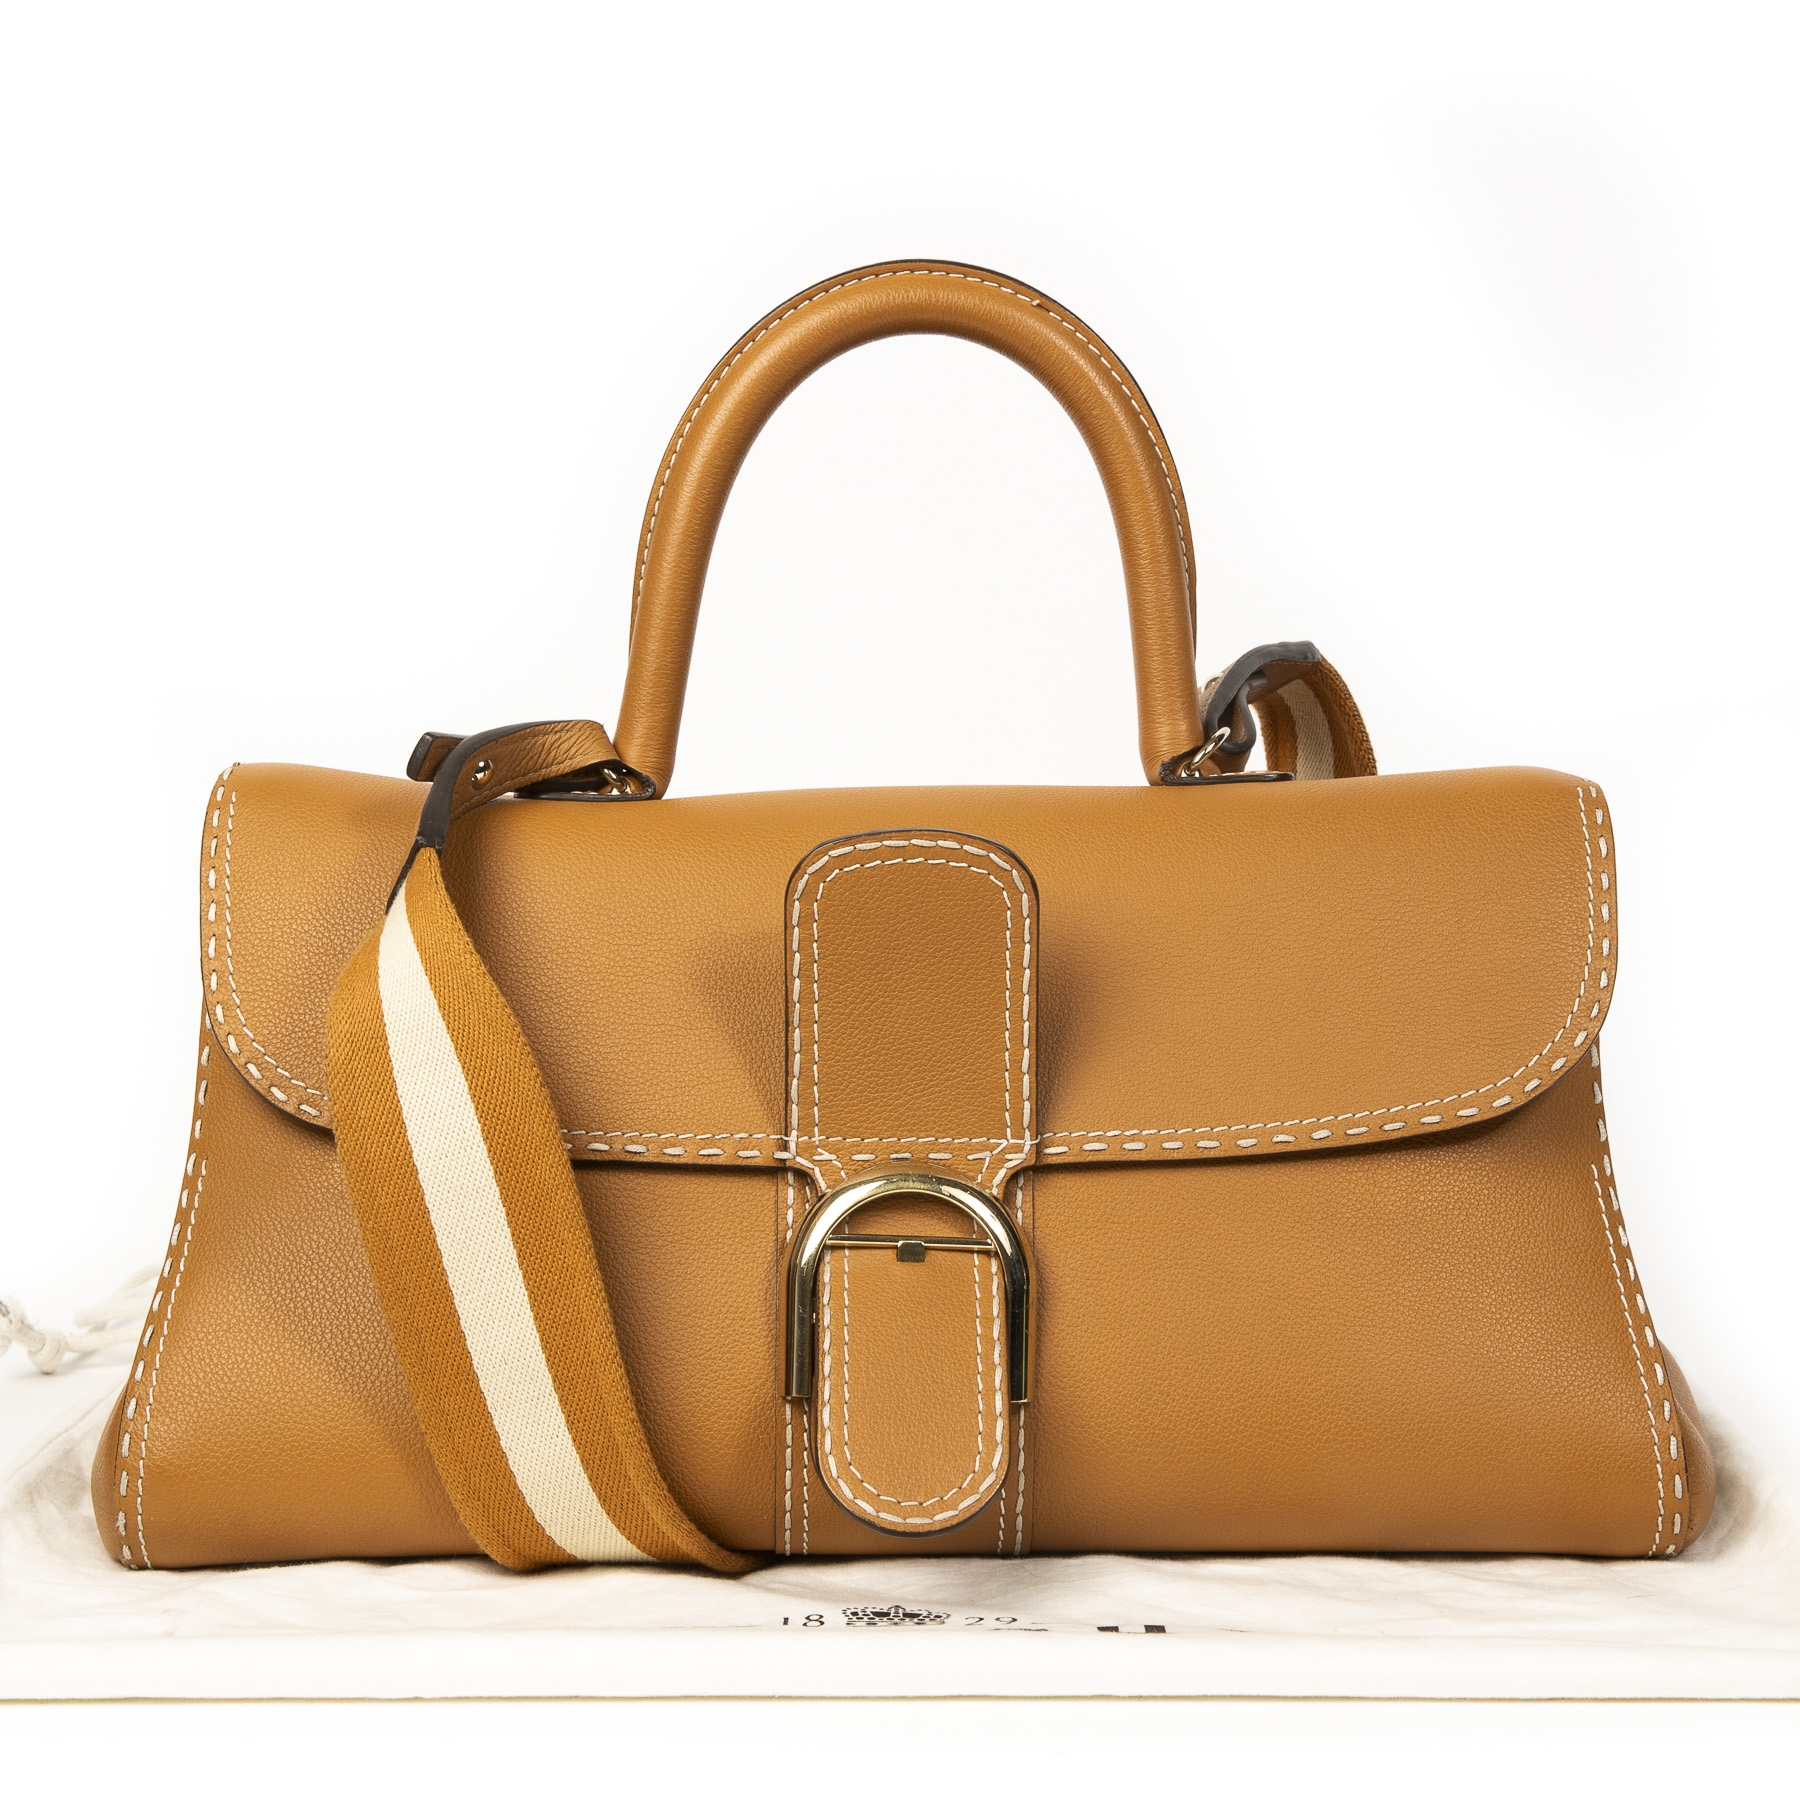 Delvaux Brillant East/West Tote Bag in Brown Clemence Leather with Large Stitch and Special Strap.  Buy authentic delvaux bag online at labellov webshop antwerp, secondhand designer vintage. Koop online tweedehands delvaux tas brillant bij labellov.